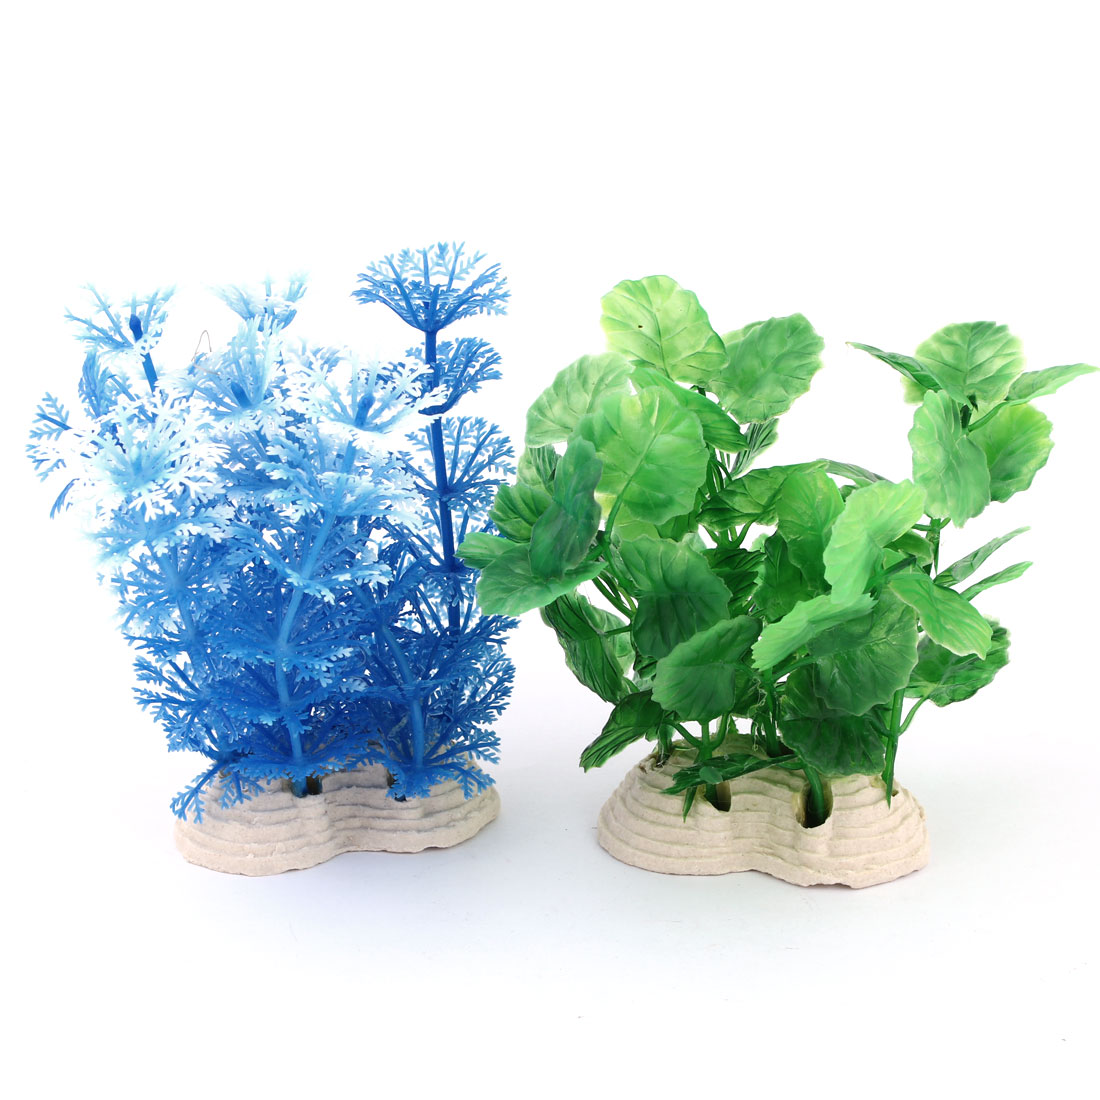 Aquarium Fishtank Decor Ceramic Base White Green Blue Underwater Plant 12cm 2Pcs